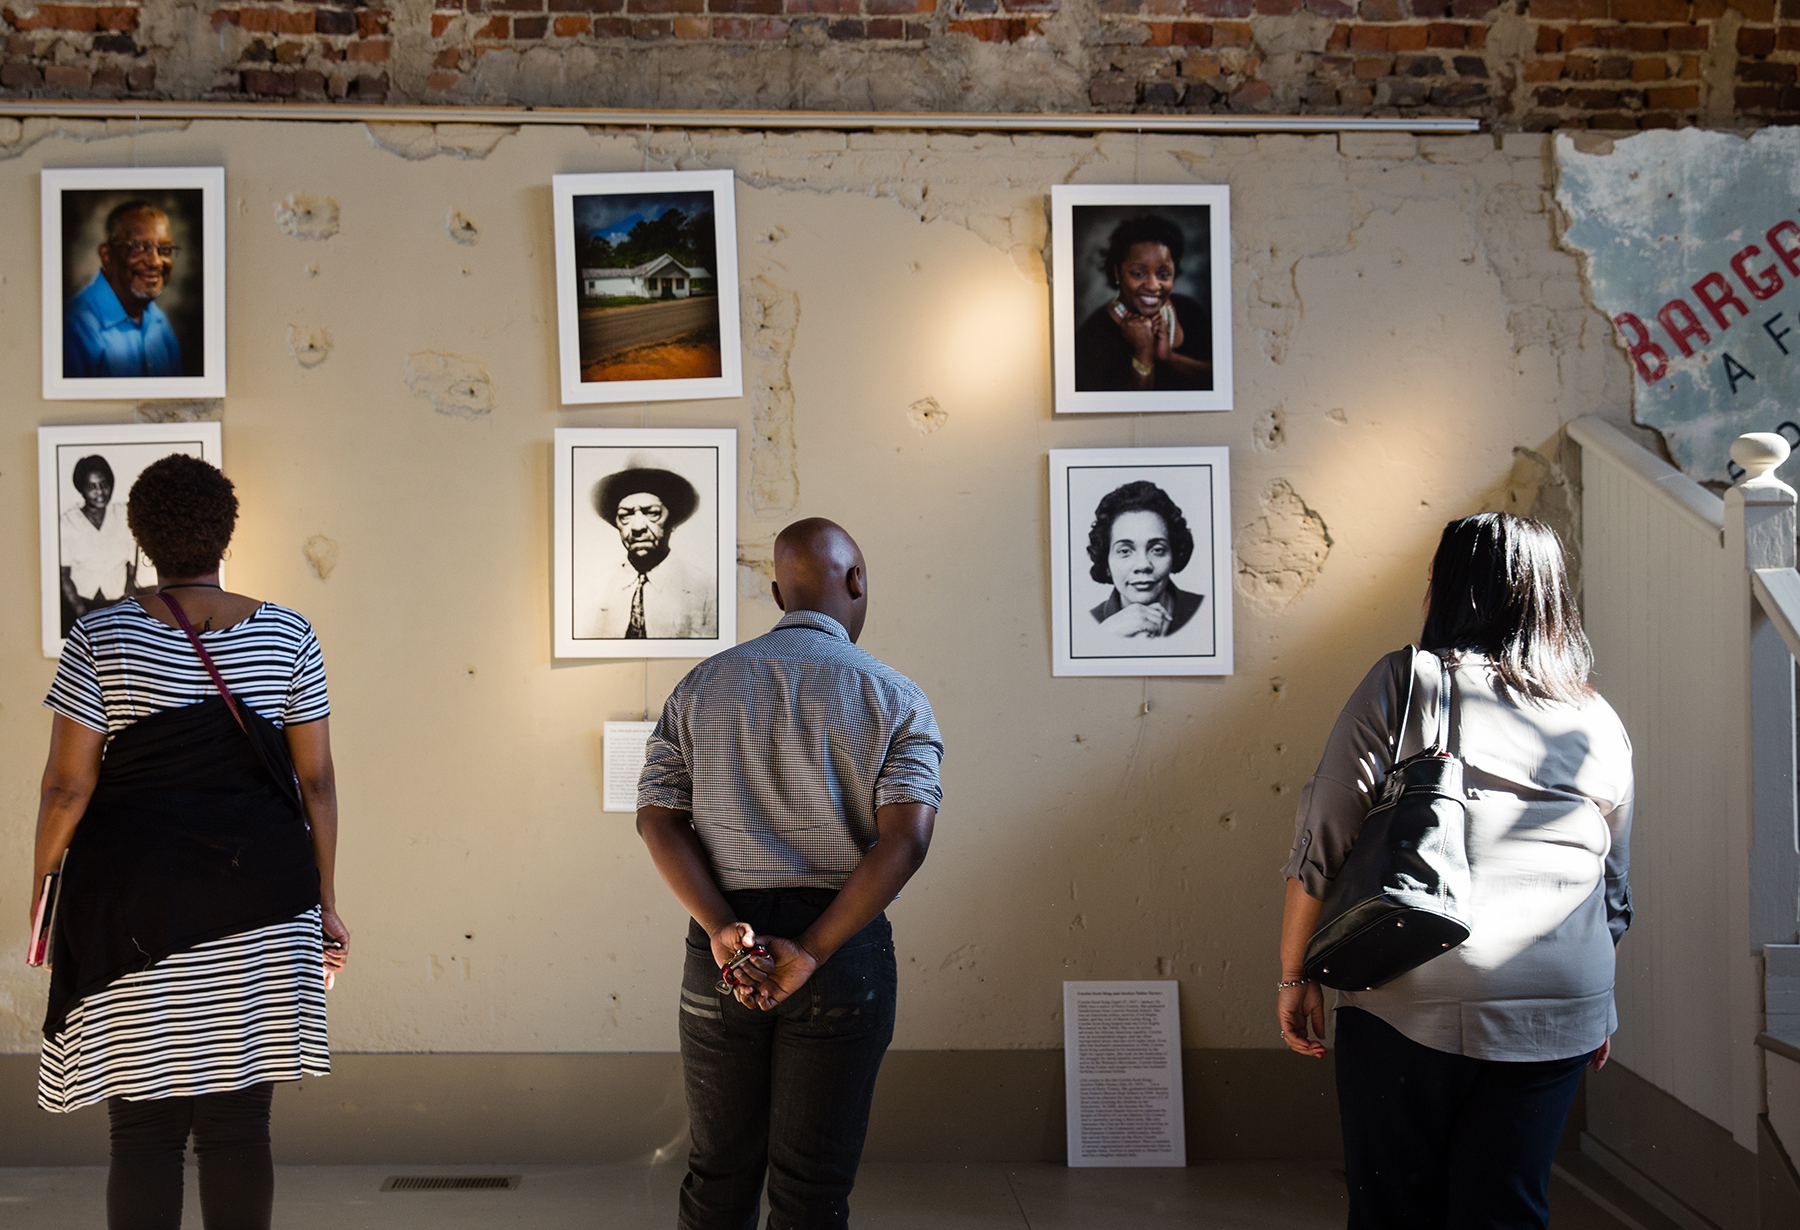 Viewers examine portraits of civil rights legends at the Smith Building Art Gallery in Marion, Alabama.